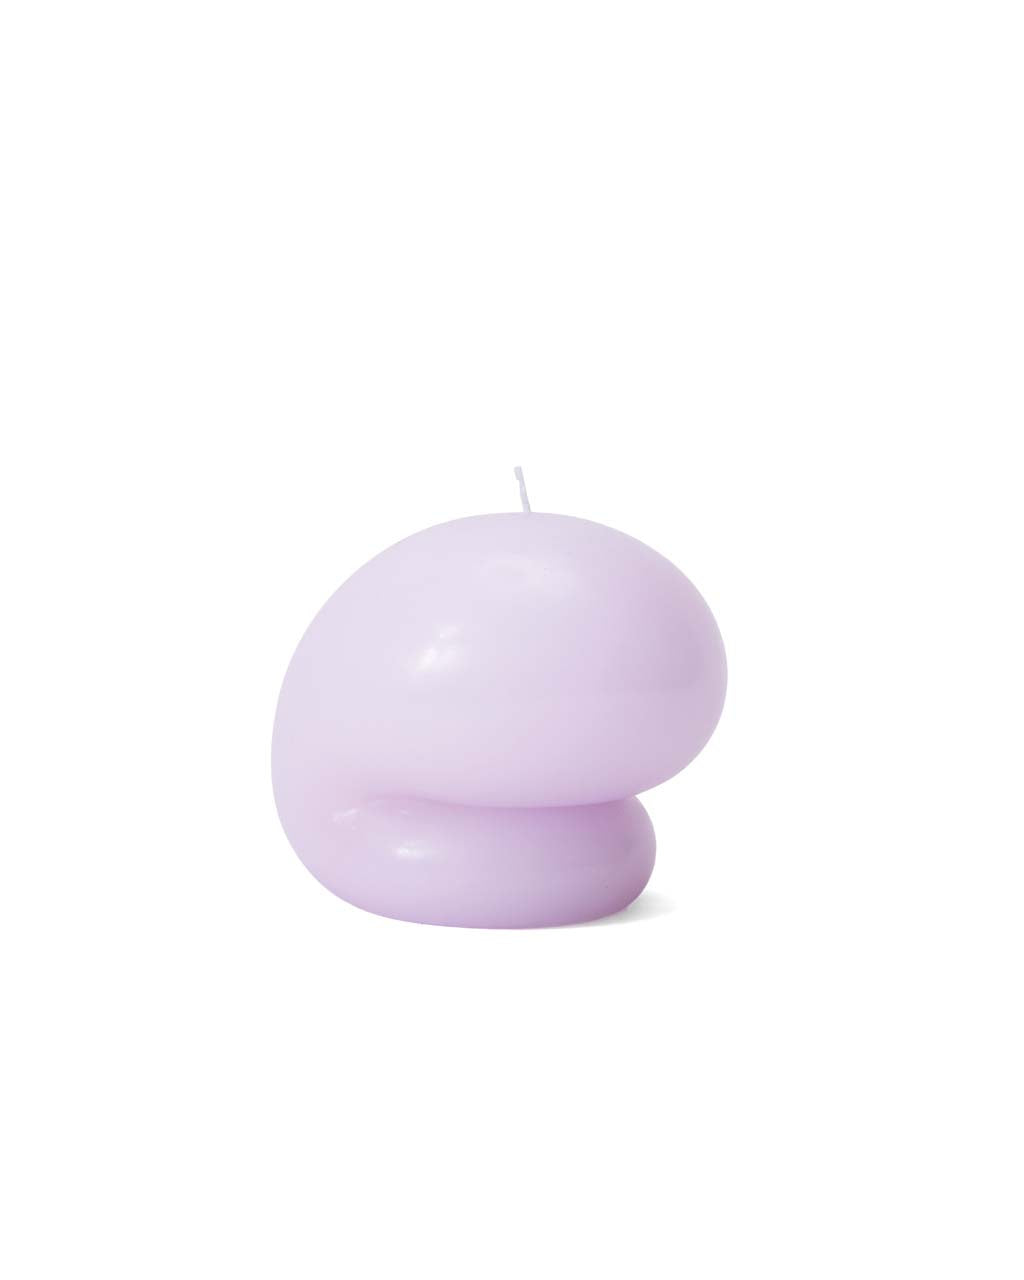 This Goober candle by Talbot & Yoon comes in a lilac purple color.